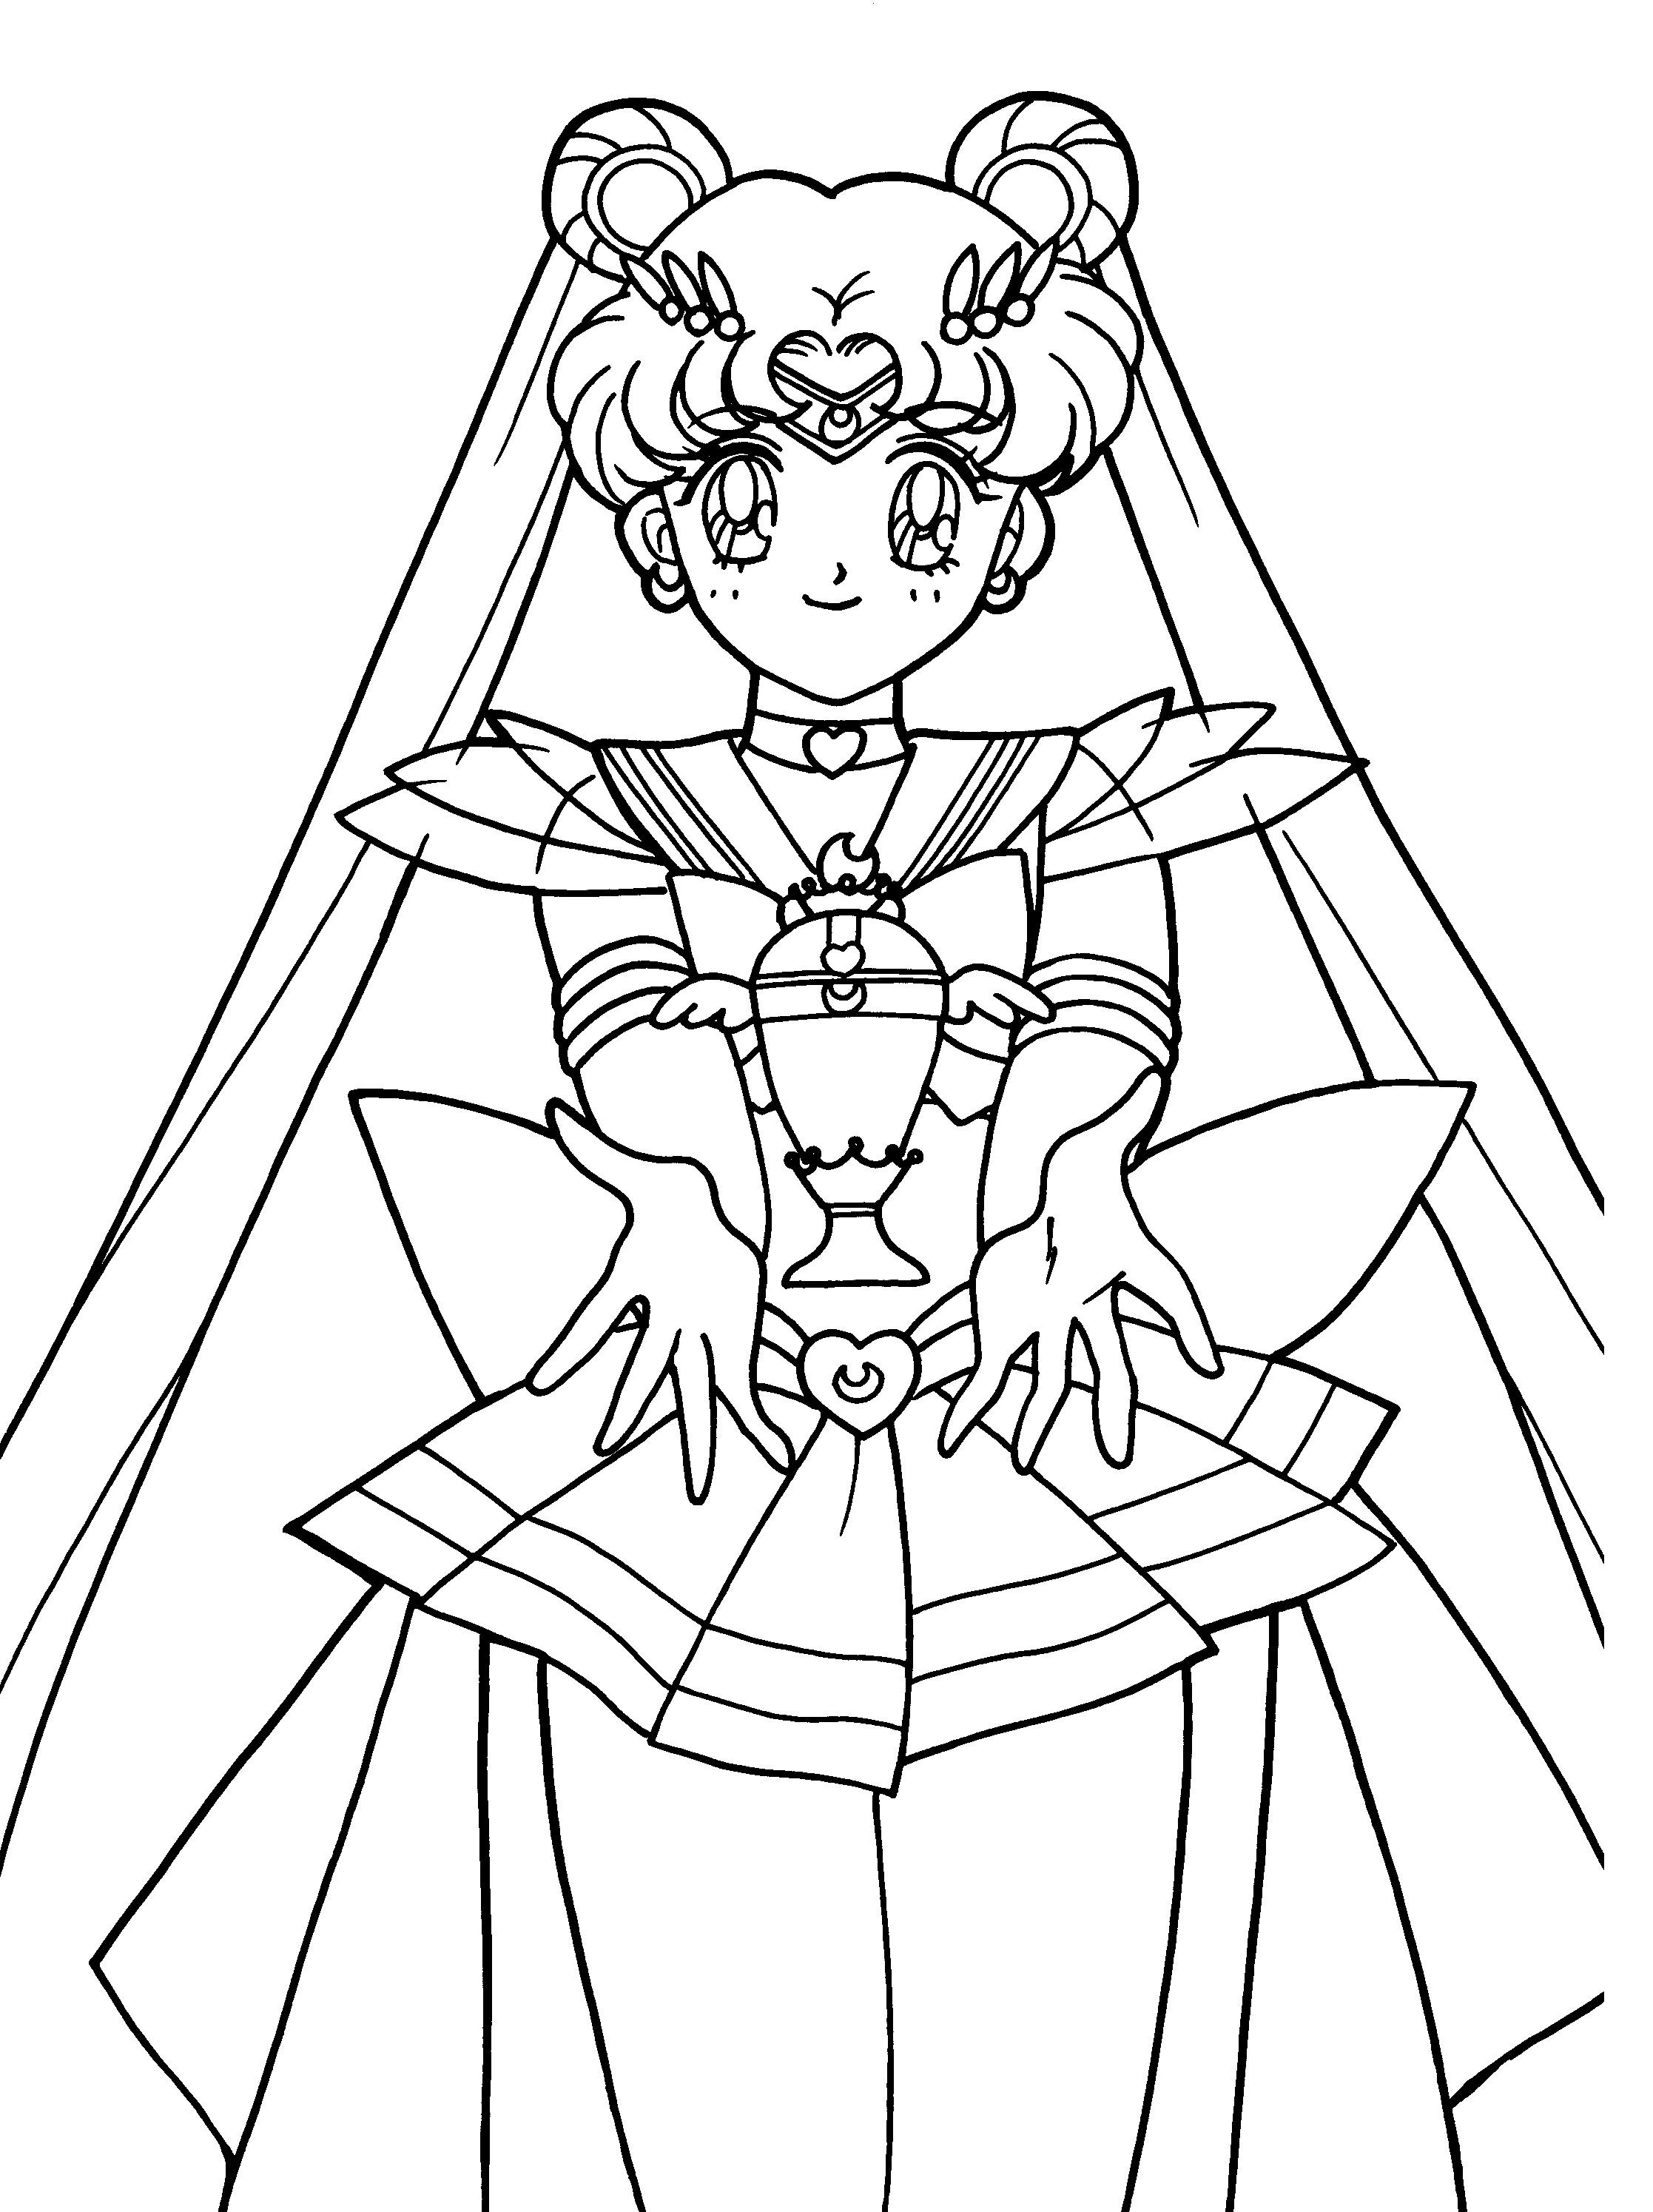 Sailor Moon Show Something Strange Coloring Pages